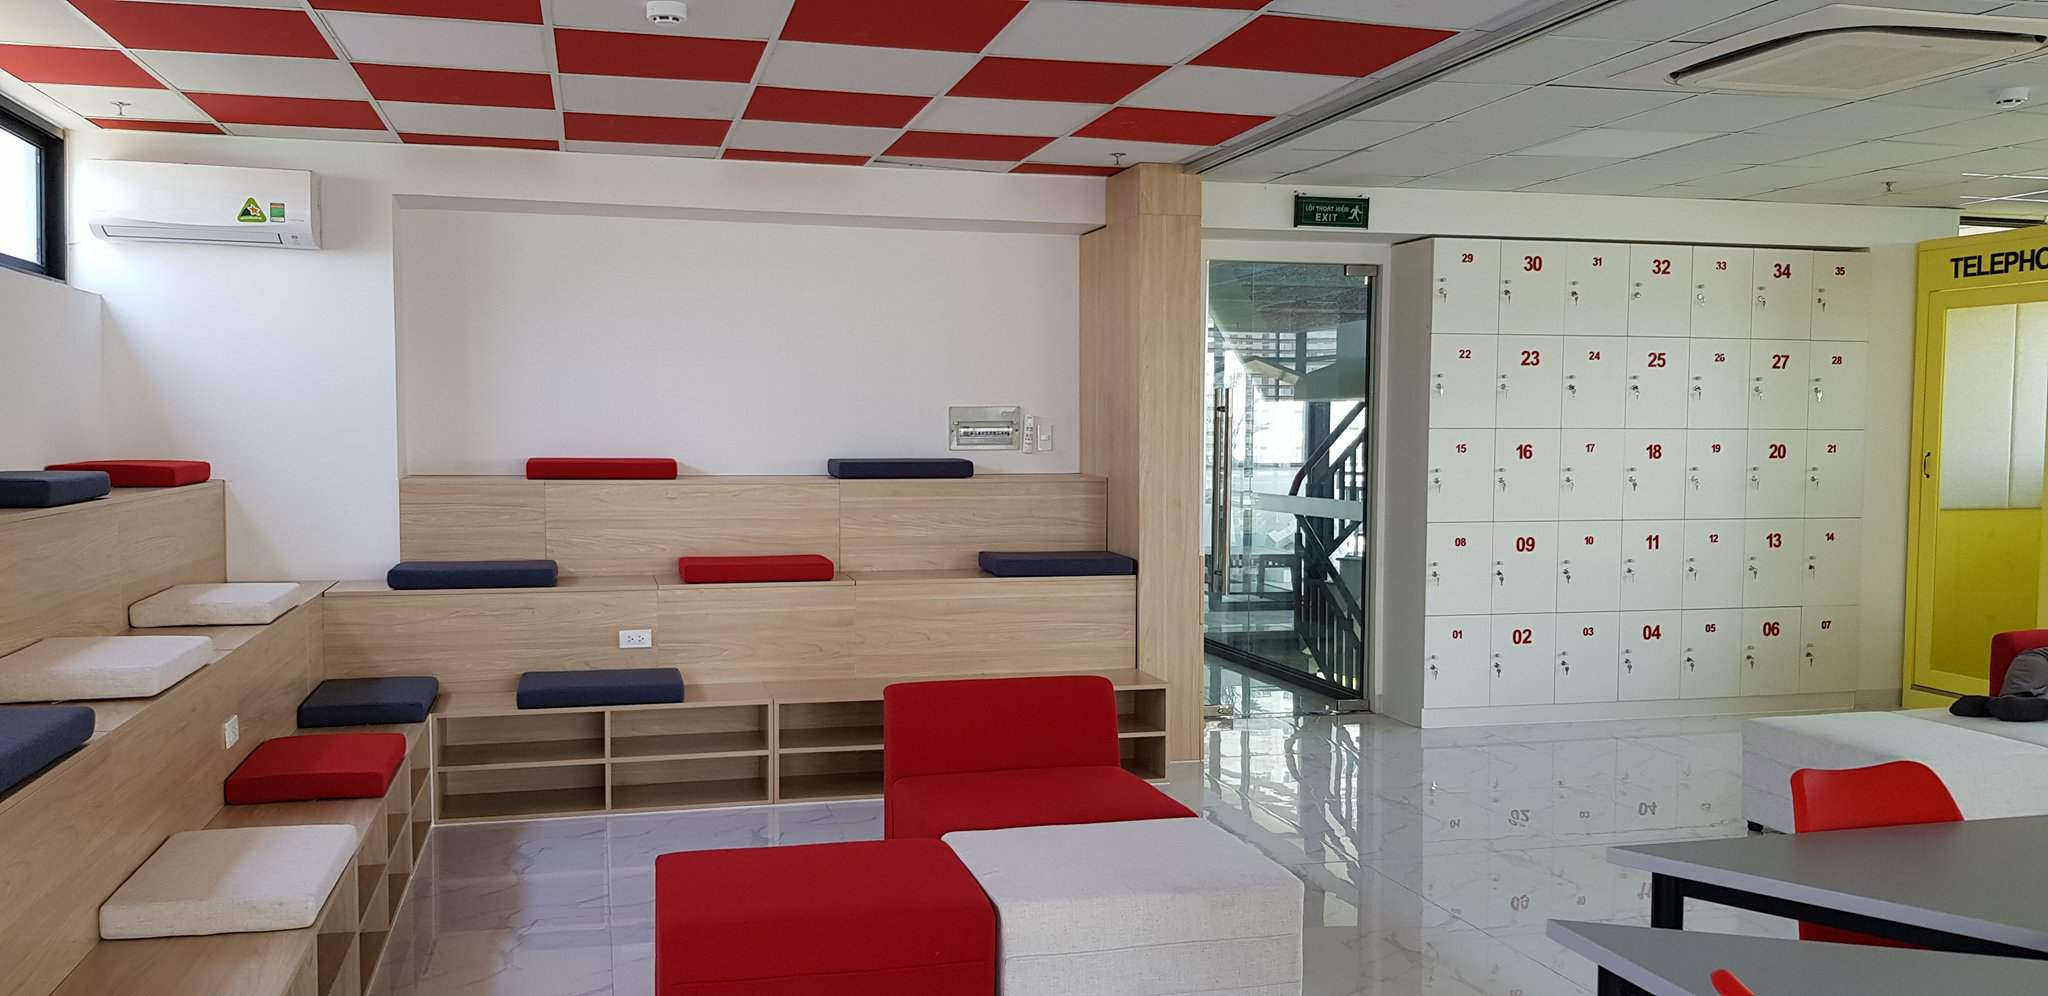 C.OPEN - CoWorking Space, Ho Chi Minh City